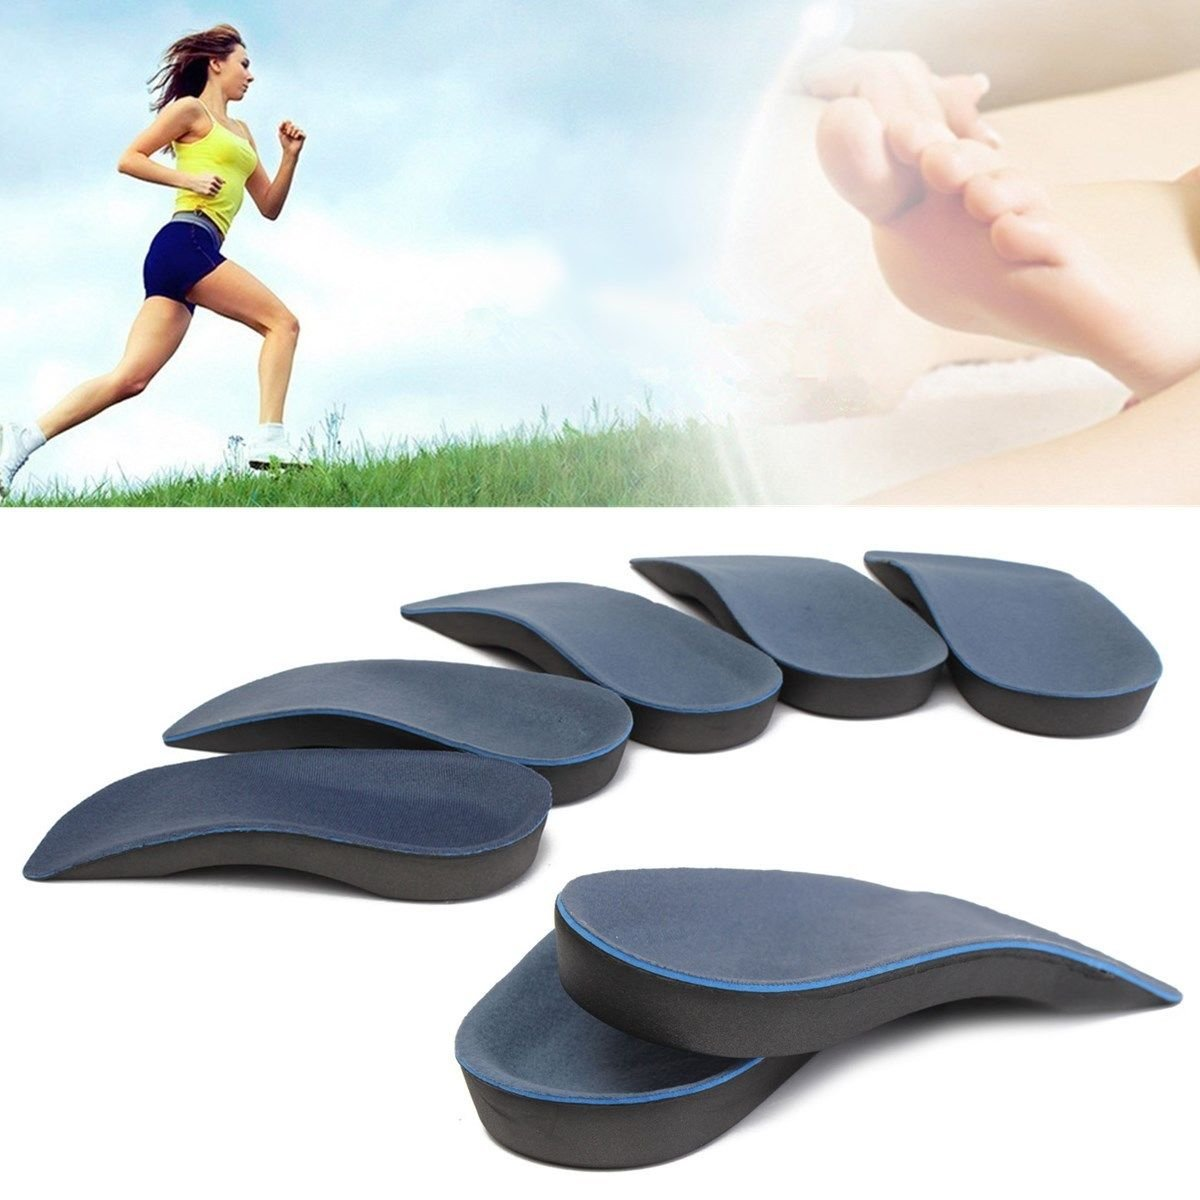 Orthotic Insole, Weak, Fallen Arches, Plantar fasciitis, Flat feet, Arch  support, Knee, bunion back hip pain relief, Body and Base Ltd TM:  Amazon.co.uk: ...